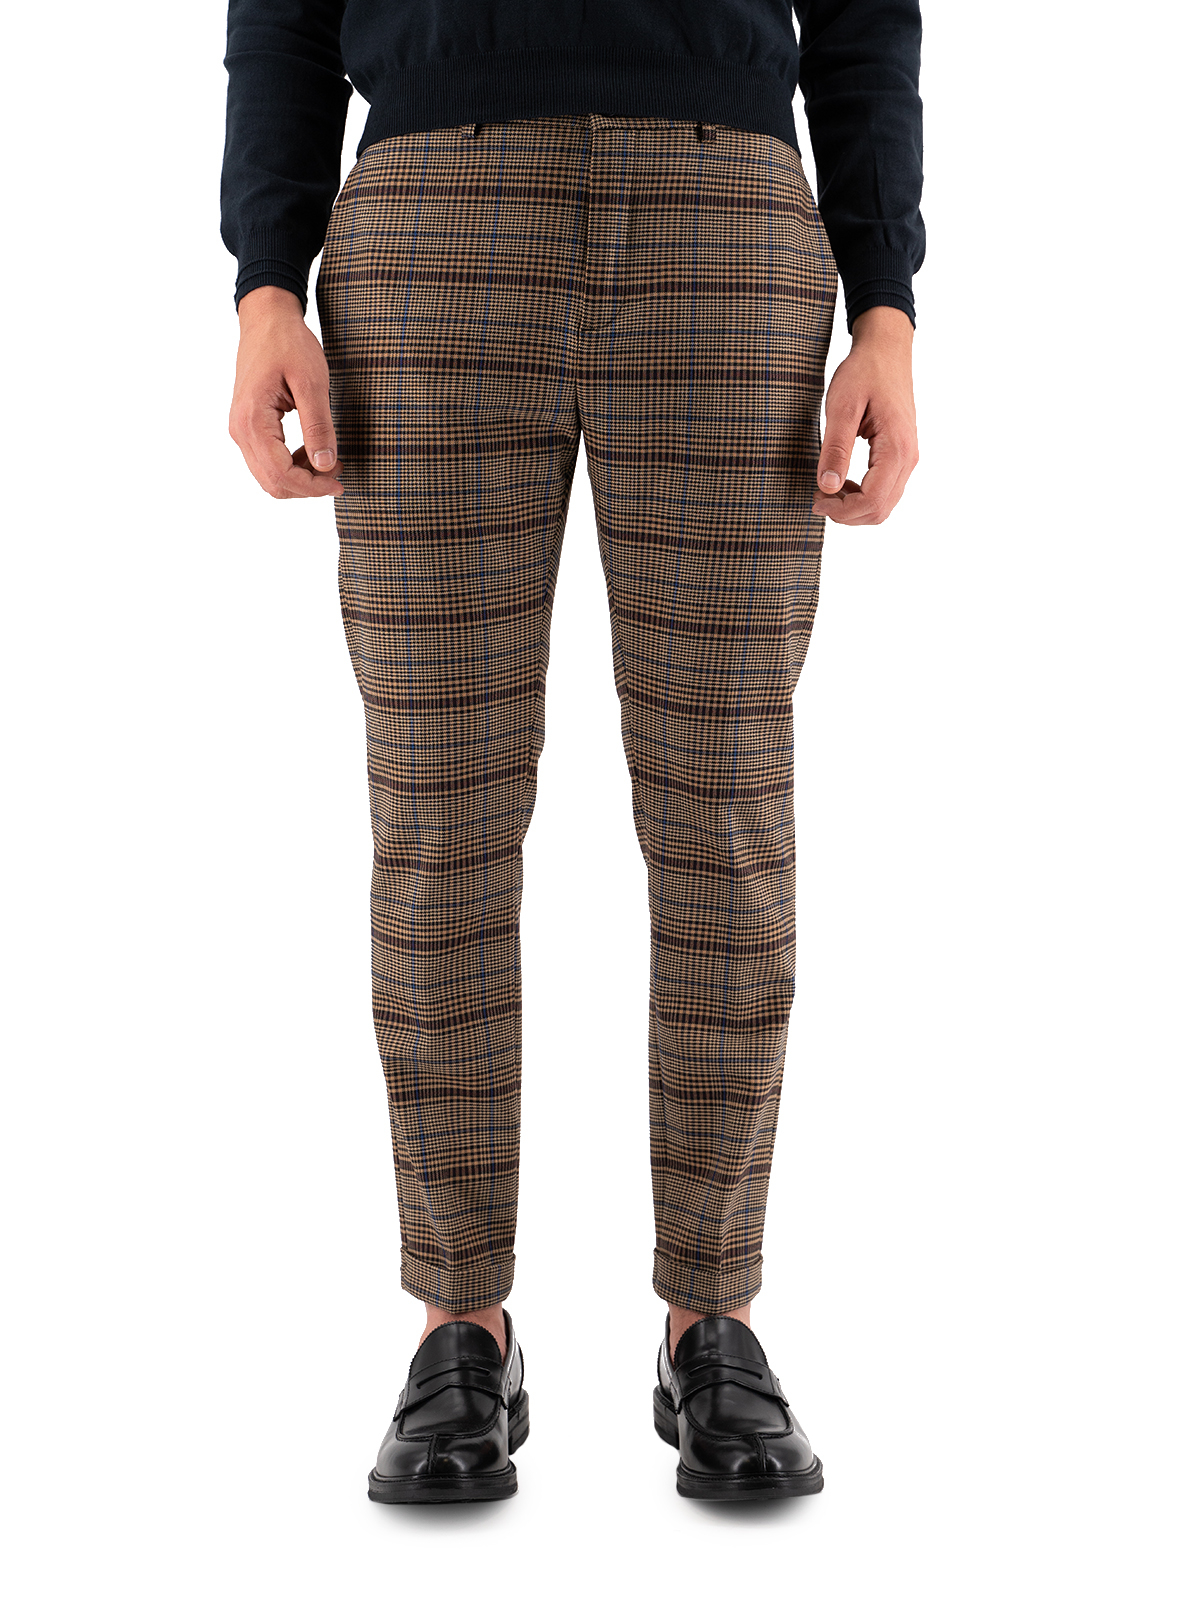 Department Five Pantalone U19P15 F1910 PRINCE CLASSIC